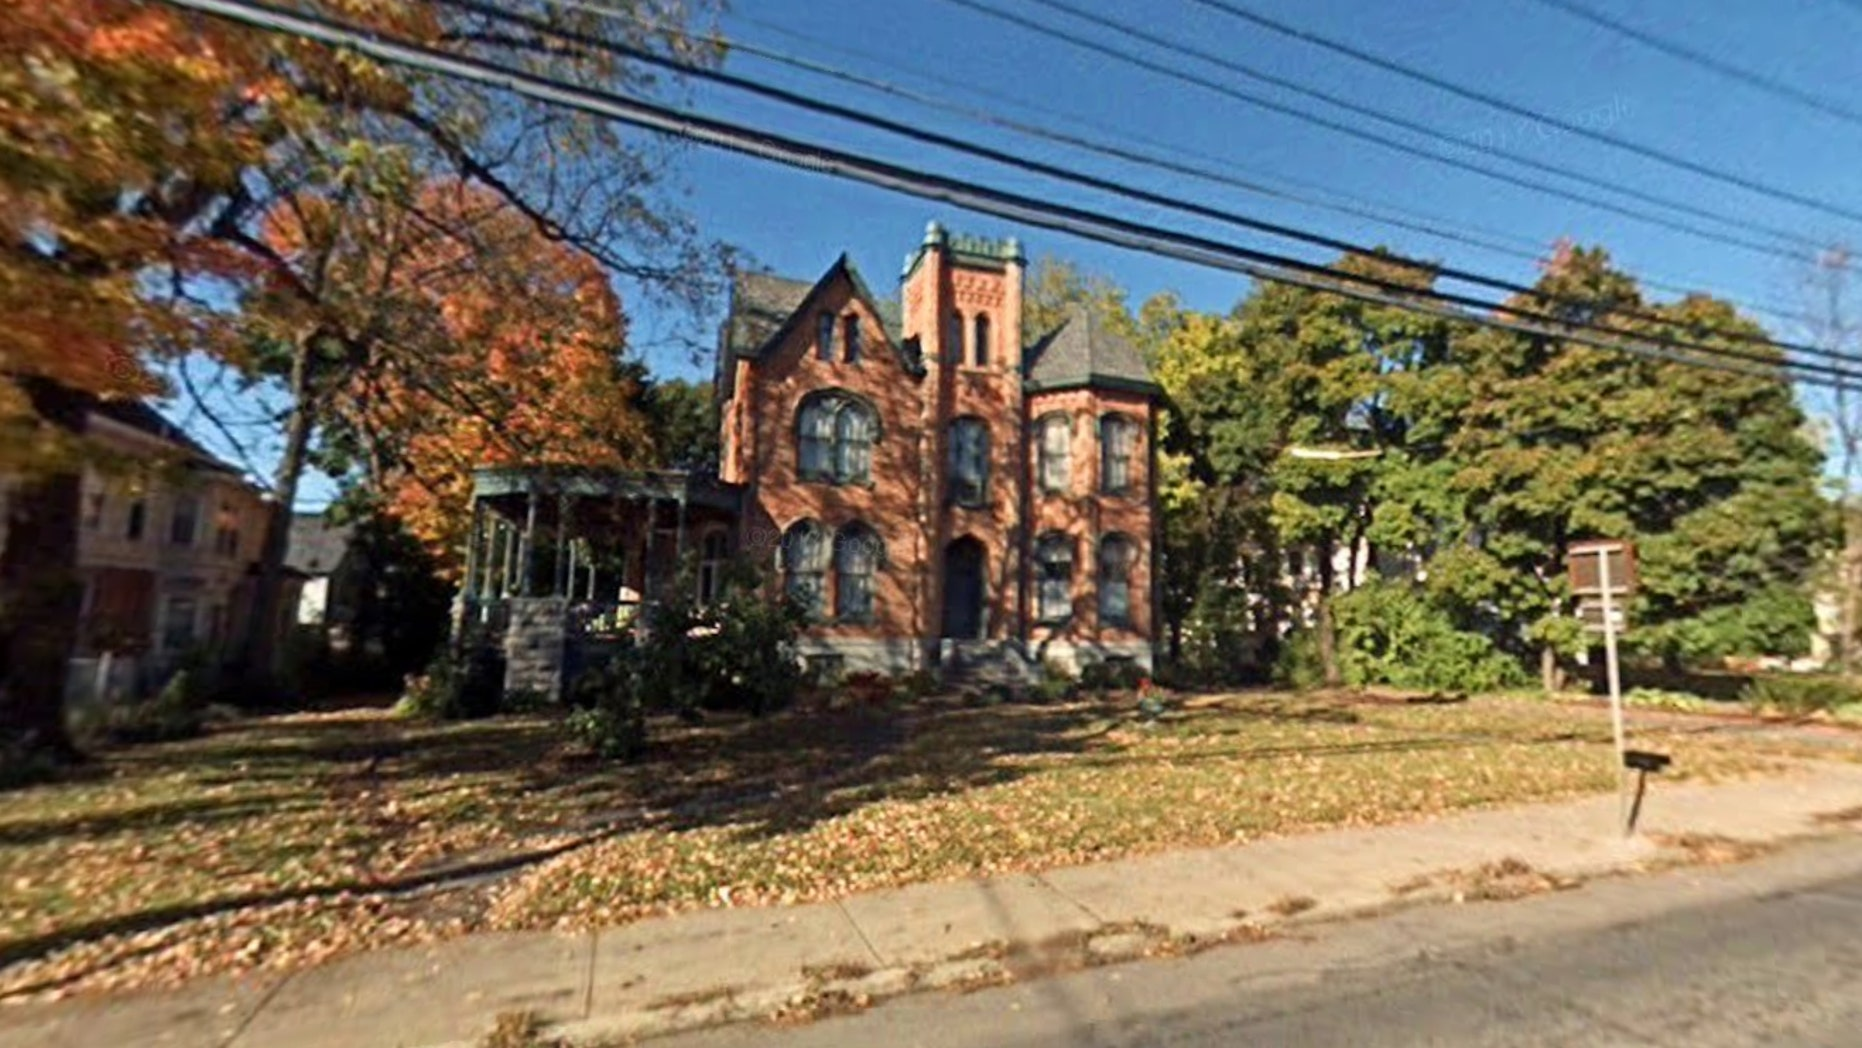 The home, located at 113 North St. in Auburn, N.Y., is currently at the center of a contest to find out which bidder might have the best restoration plan.